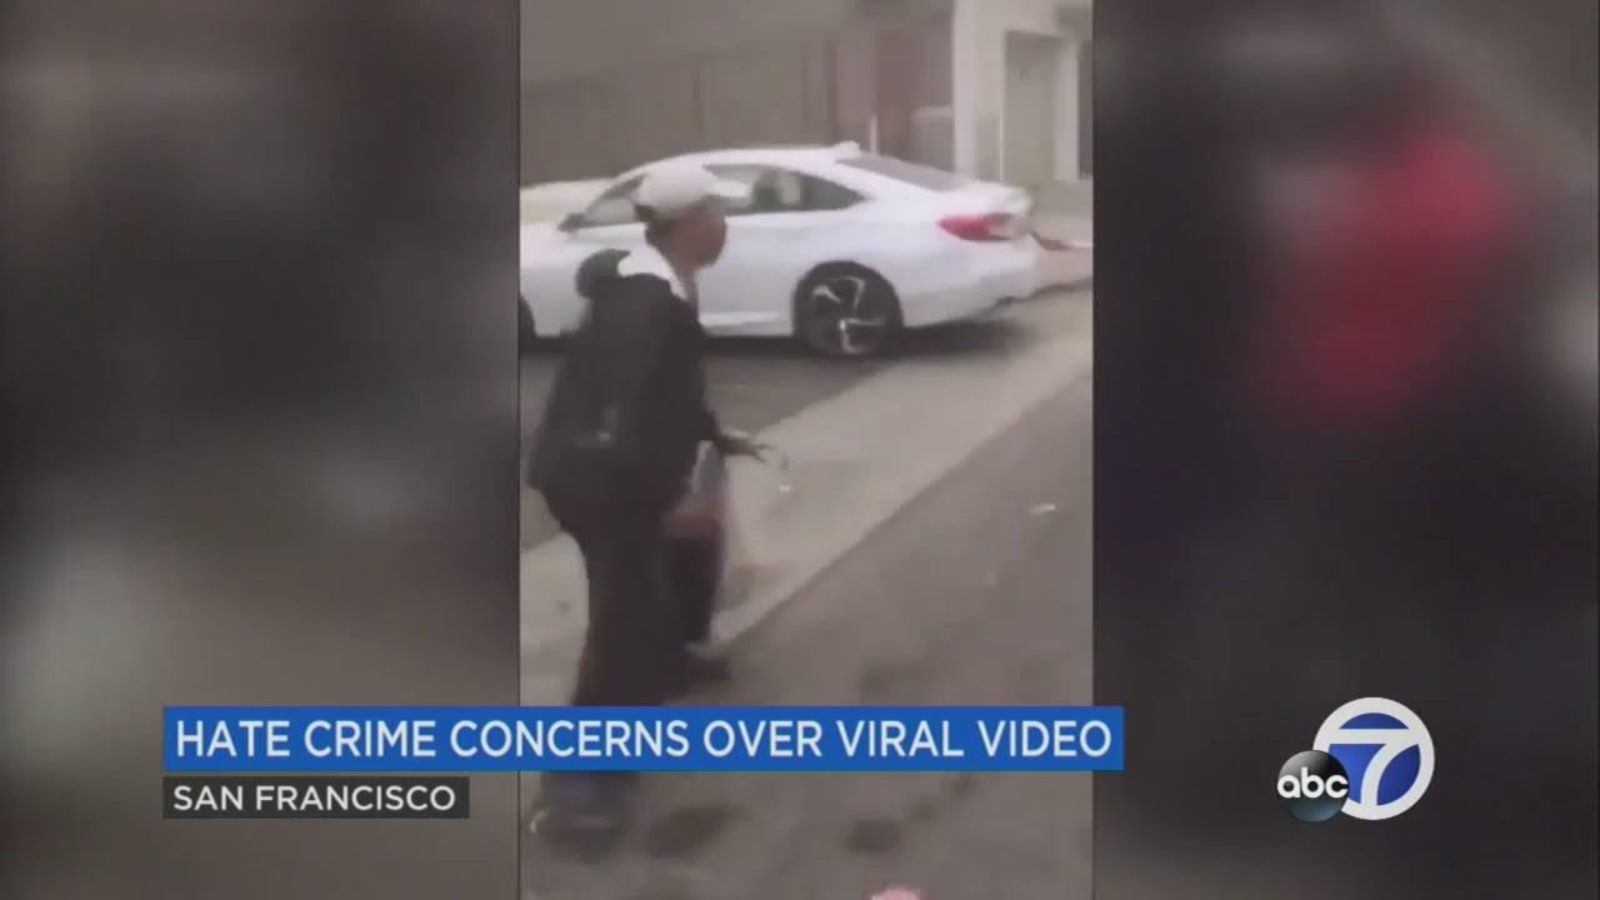 abc7news.com: Surge in Racism Against Asian Americans Spurs Calls for Change